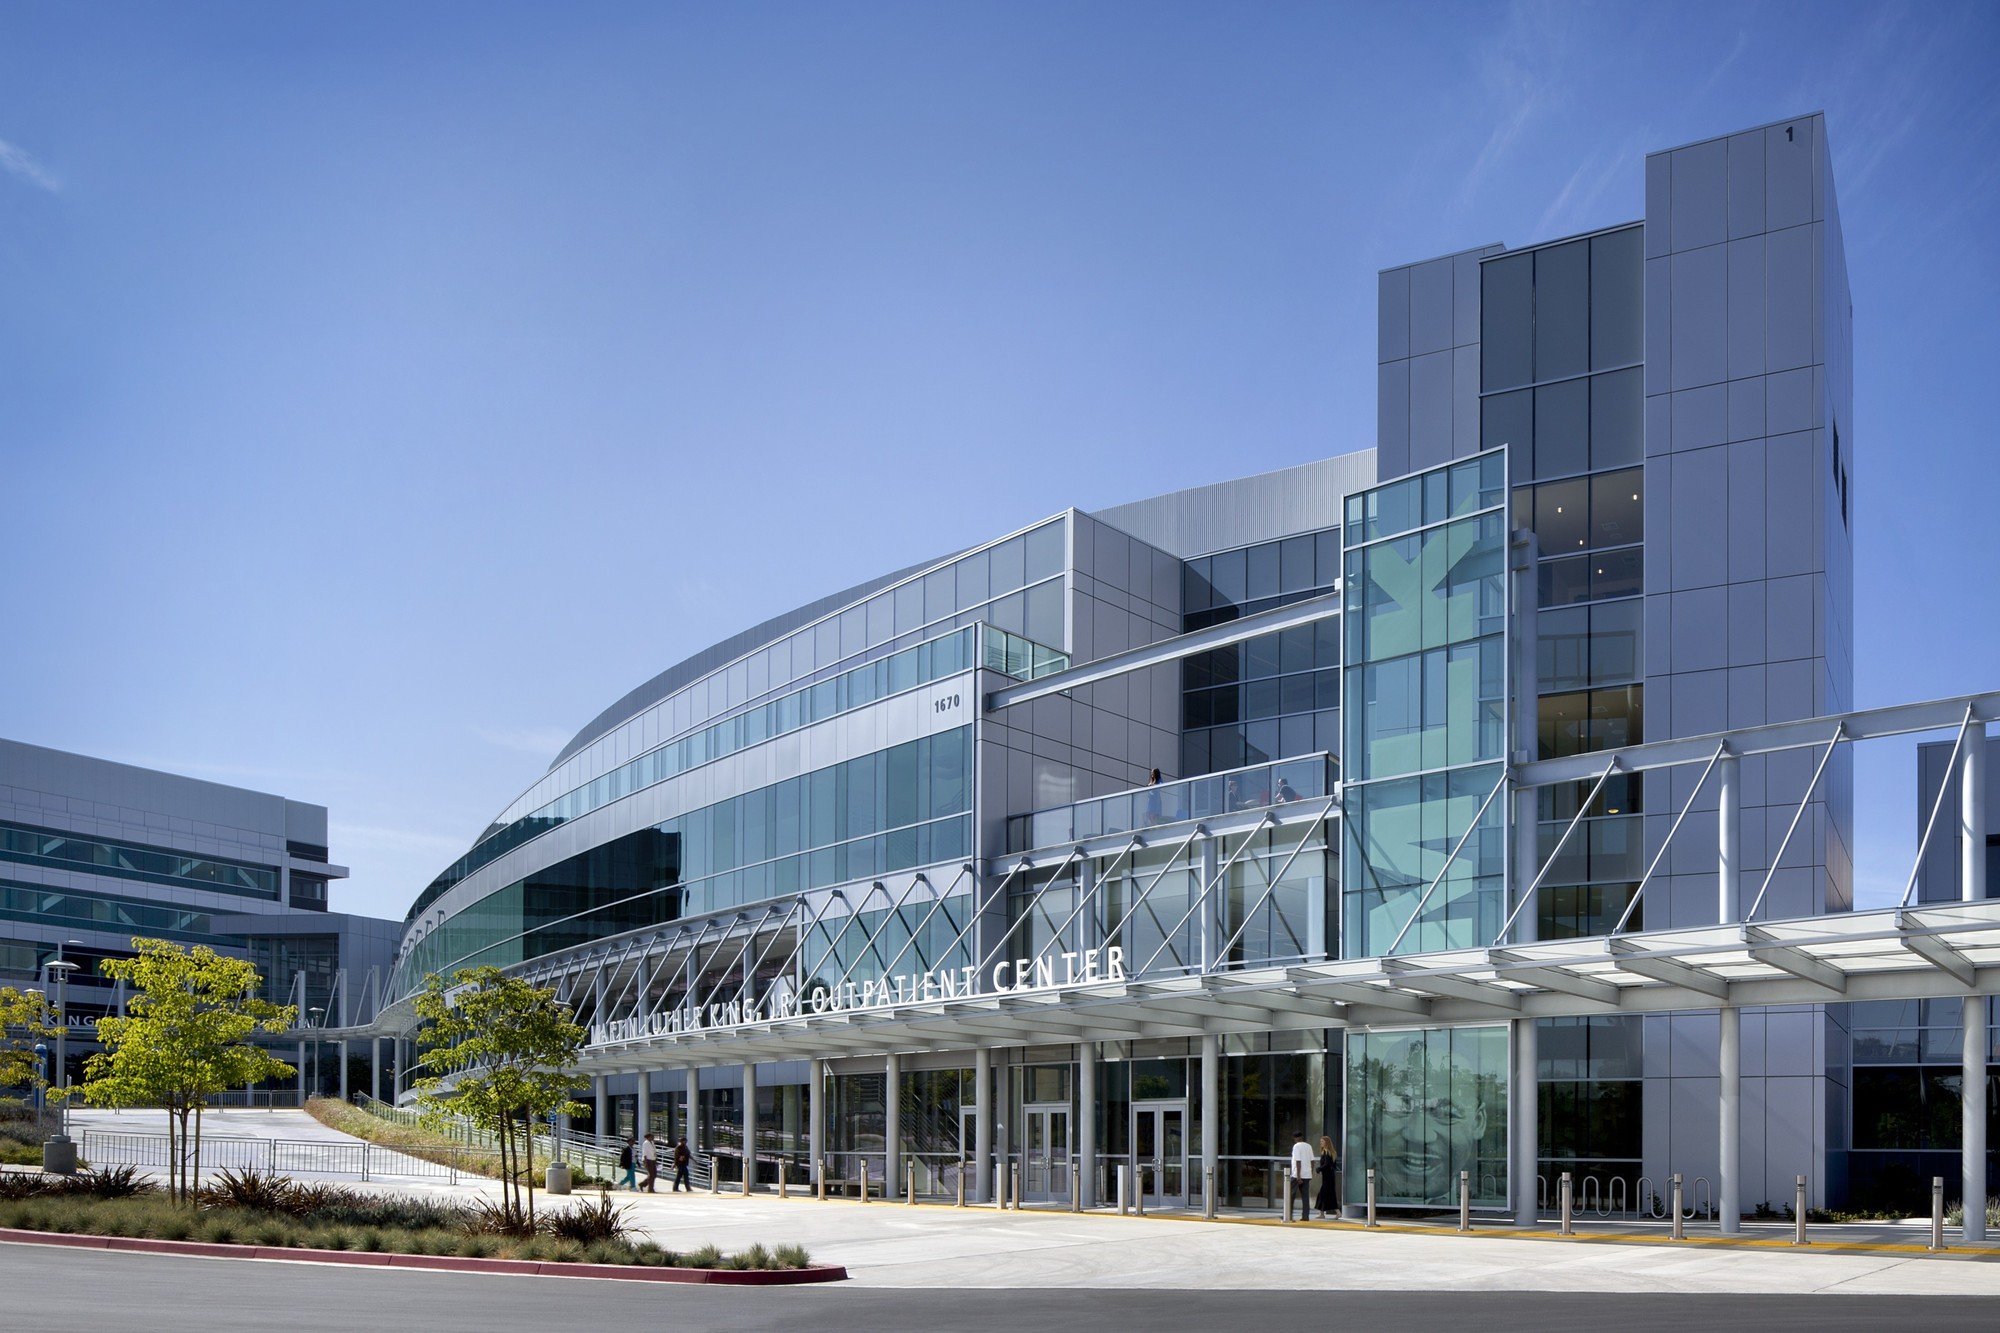 Martin Luther King, Jr. Outpatient Center. Image Courtesy of HMC Architects